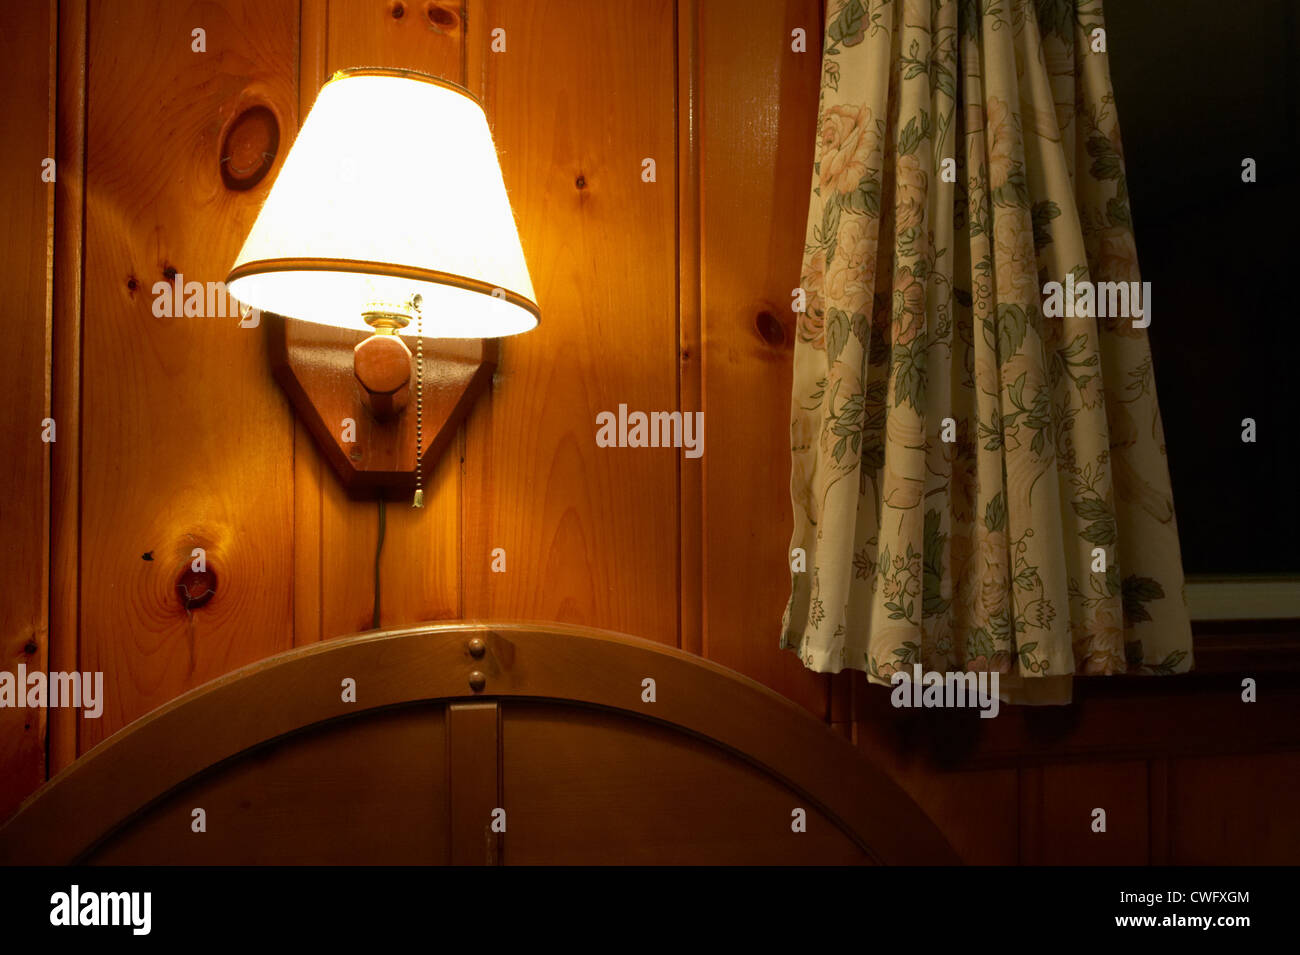 Wood Paneling Wall Lamp Stock Photos Wood Paneling Wall Lamp Stock